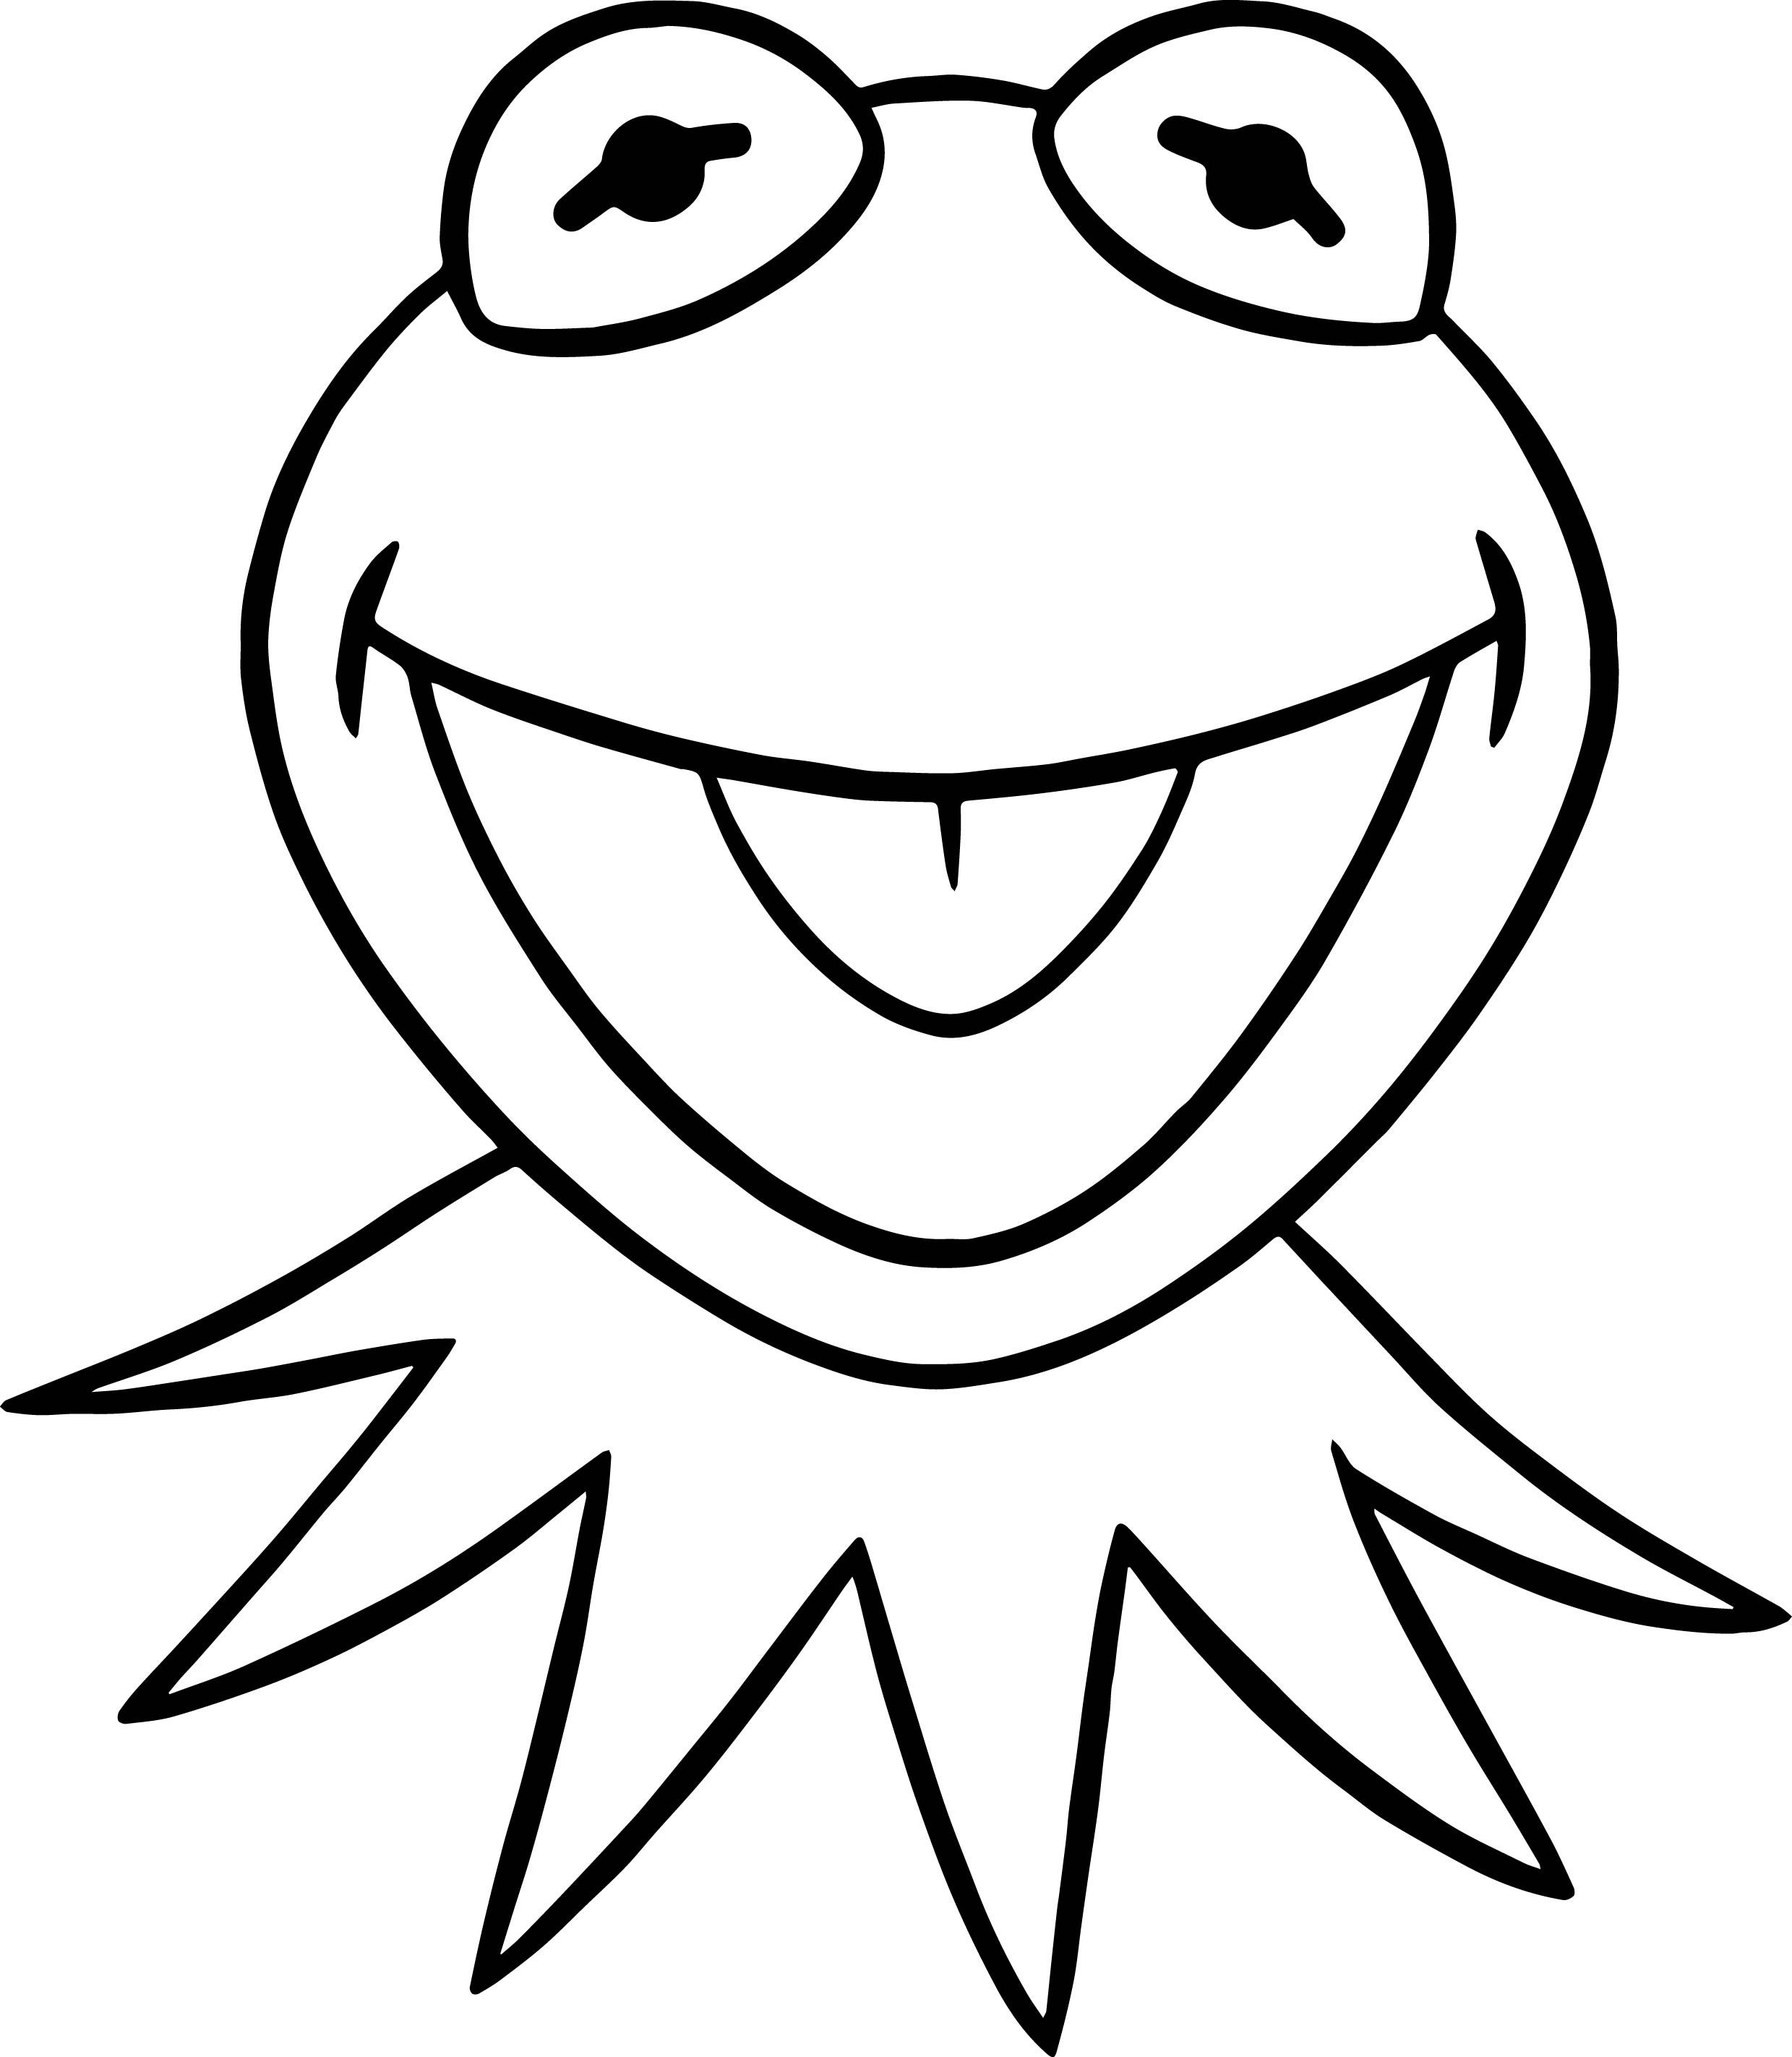 how to draw a frog face draw a dog face drawings drawings dogs drawing for kids to how face a frog draw